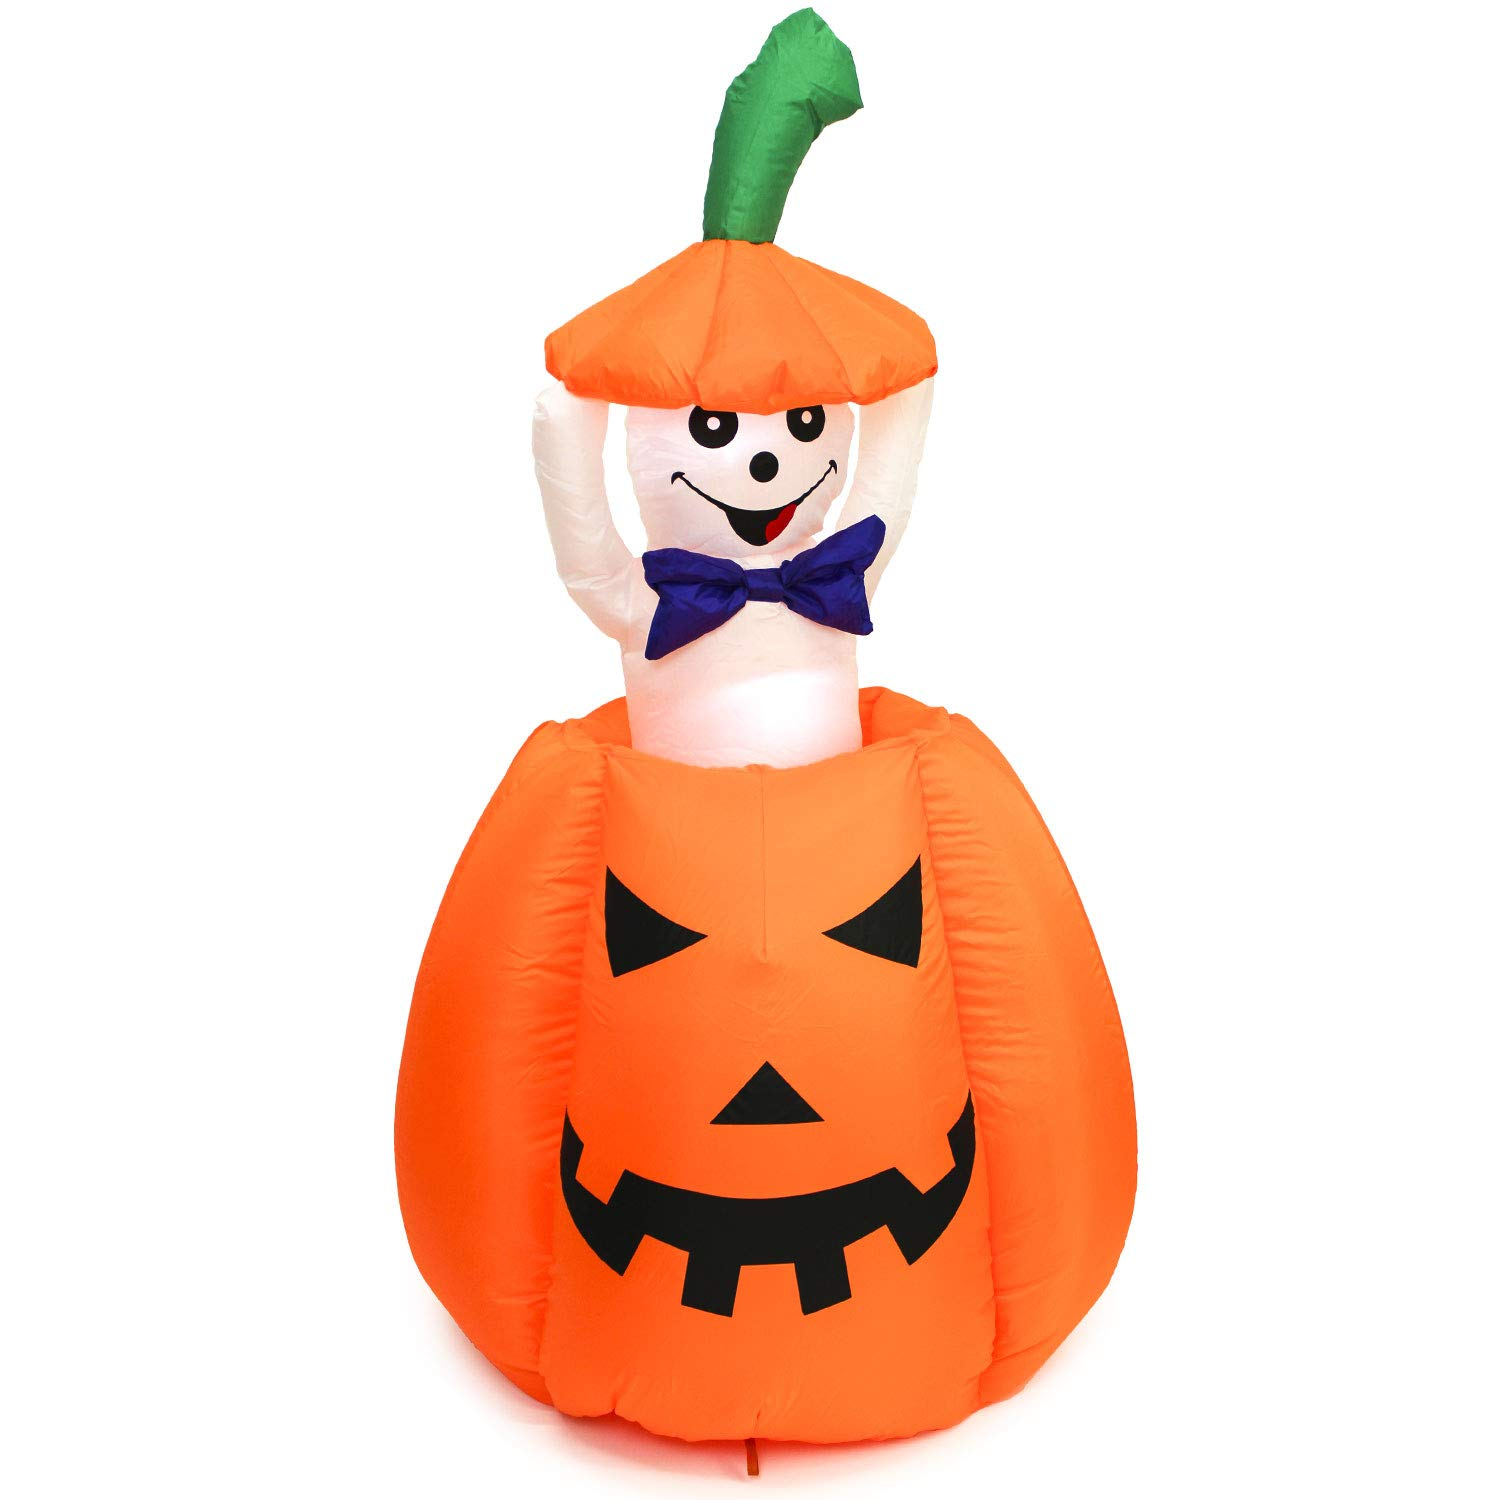 Halloween Haunters 5 Foot Animated Inflatable Pumpkin with a Pop-Up and Down Ghost with LED Lights Indoor Outdoor Yard Lawn Prop Decoration - Kids Love This Adorable Rise Up and Down Display